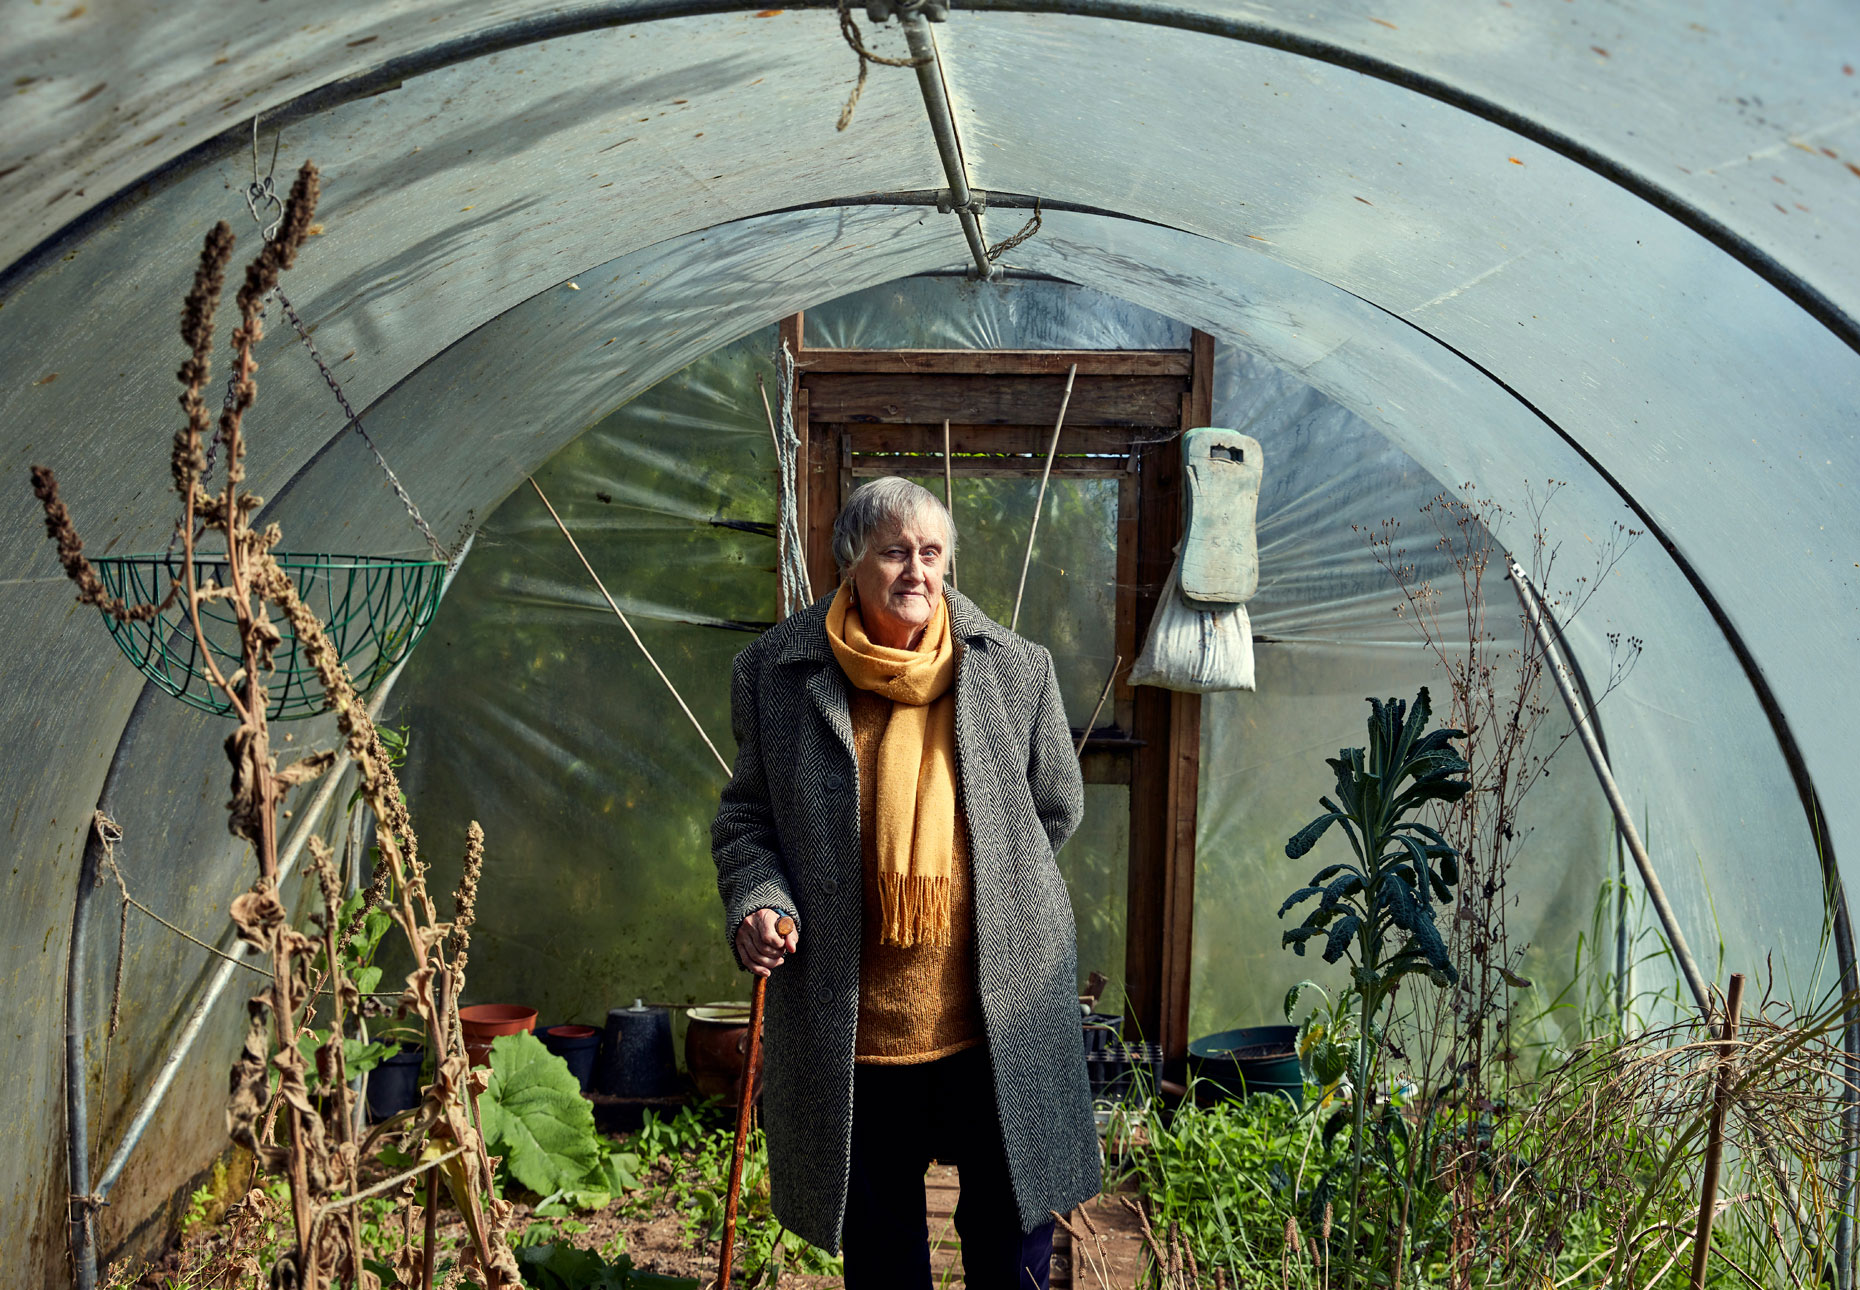 old lady stands in greenhouse with stick